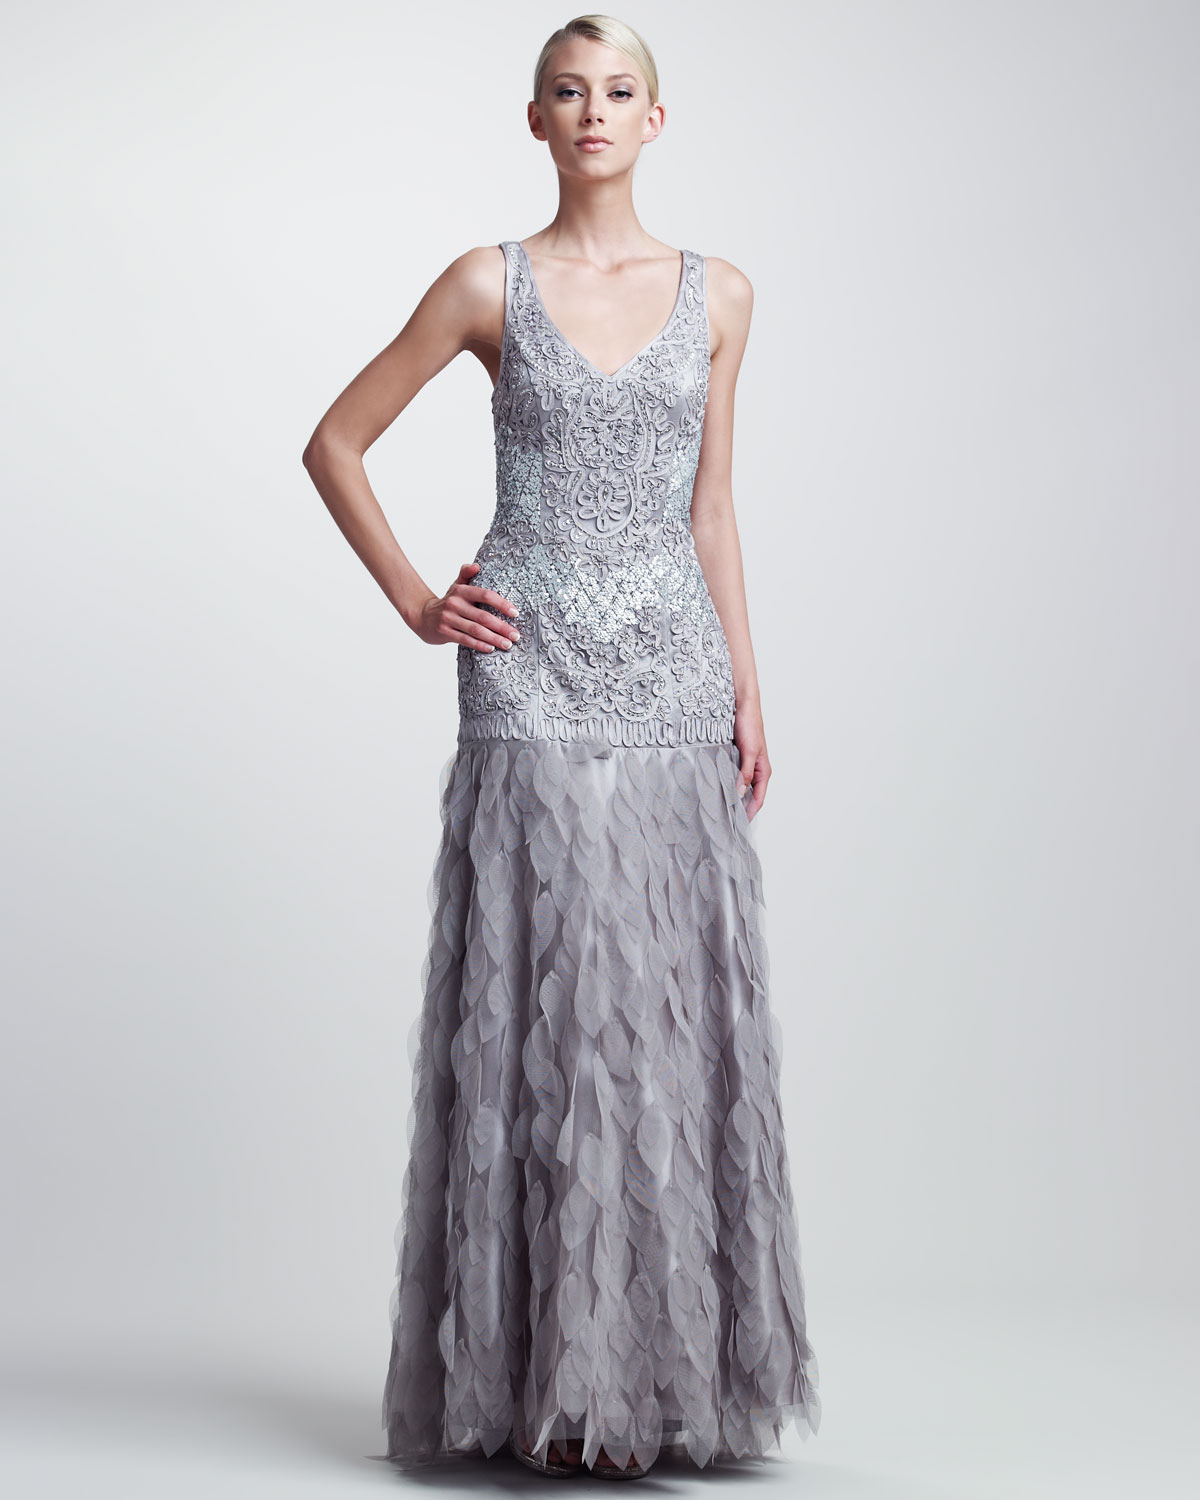 Lyst - Sue Wong Beaded Organzaskirt Gown in Gray